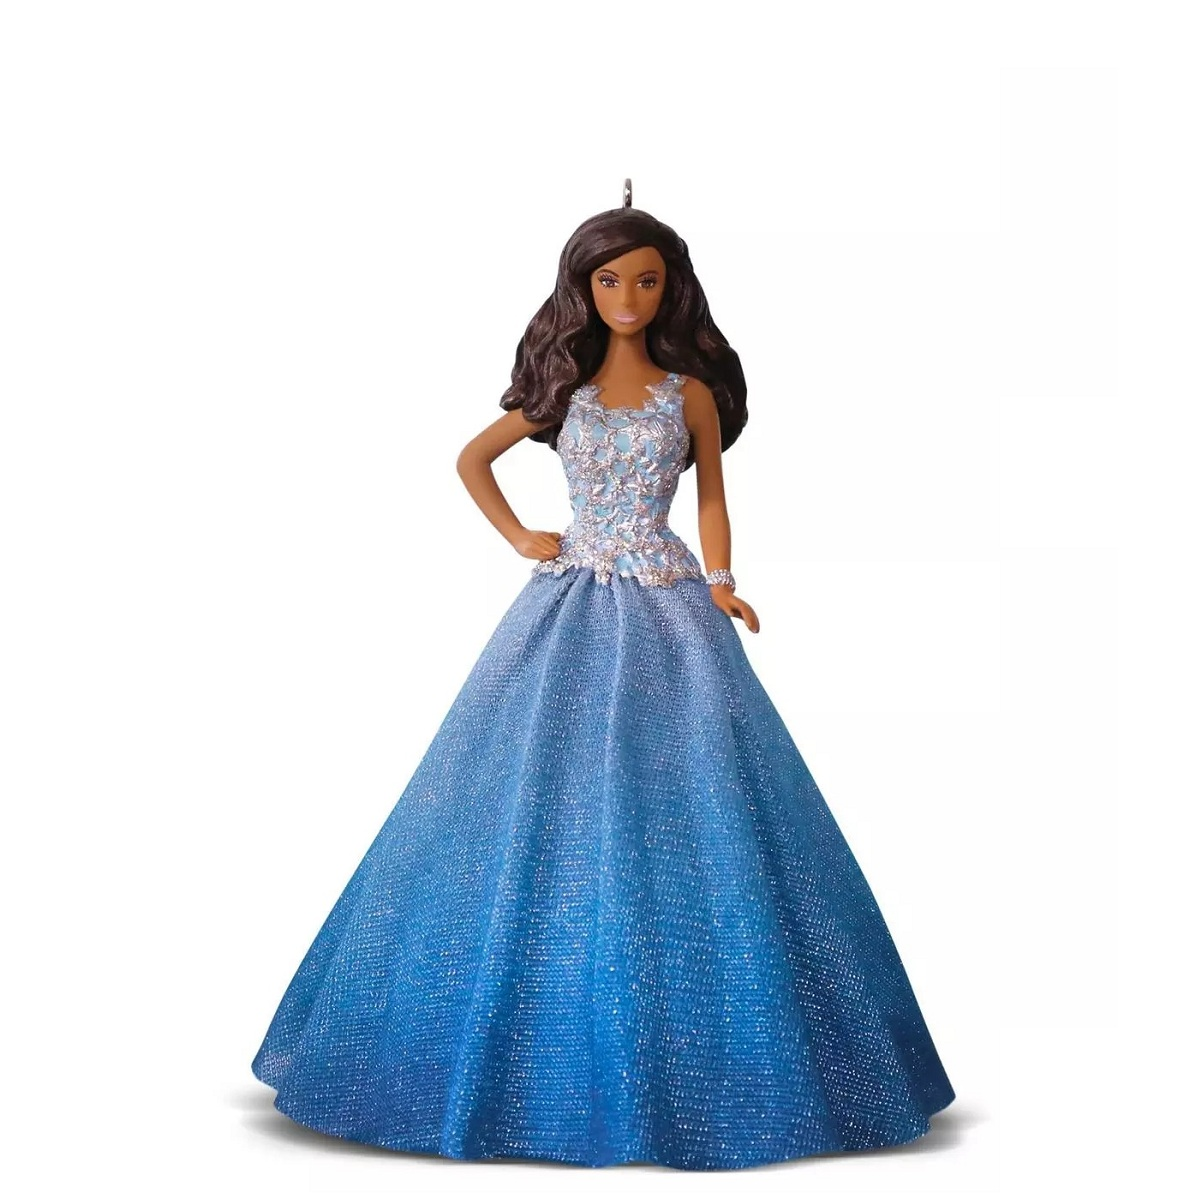 Hallmark African-American Holiday Barbie Ornament